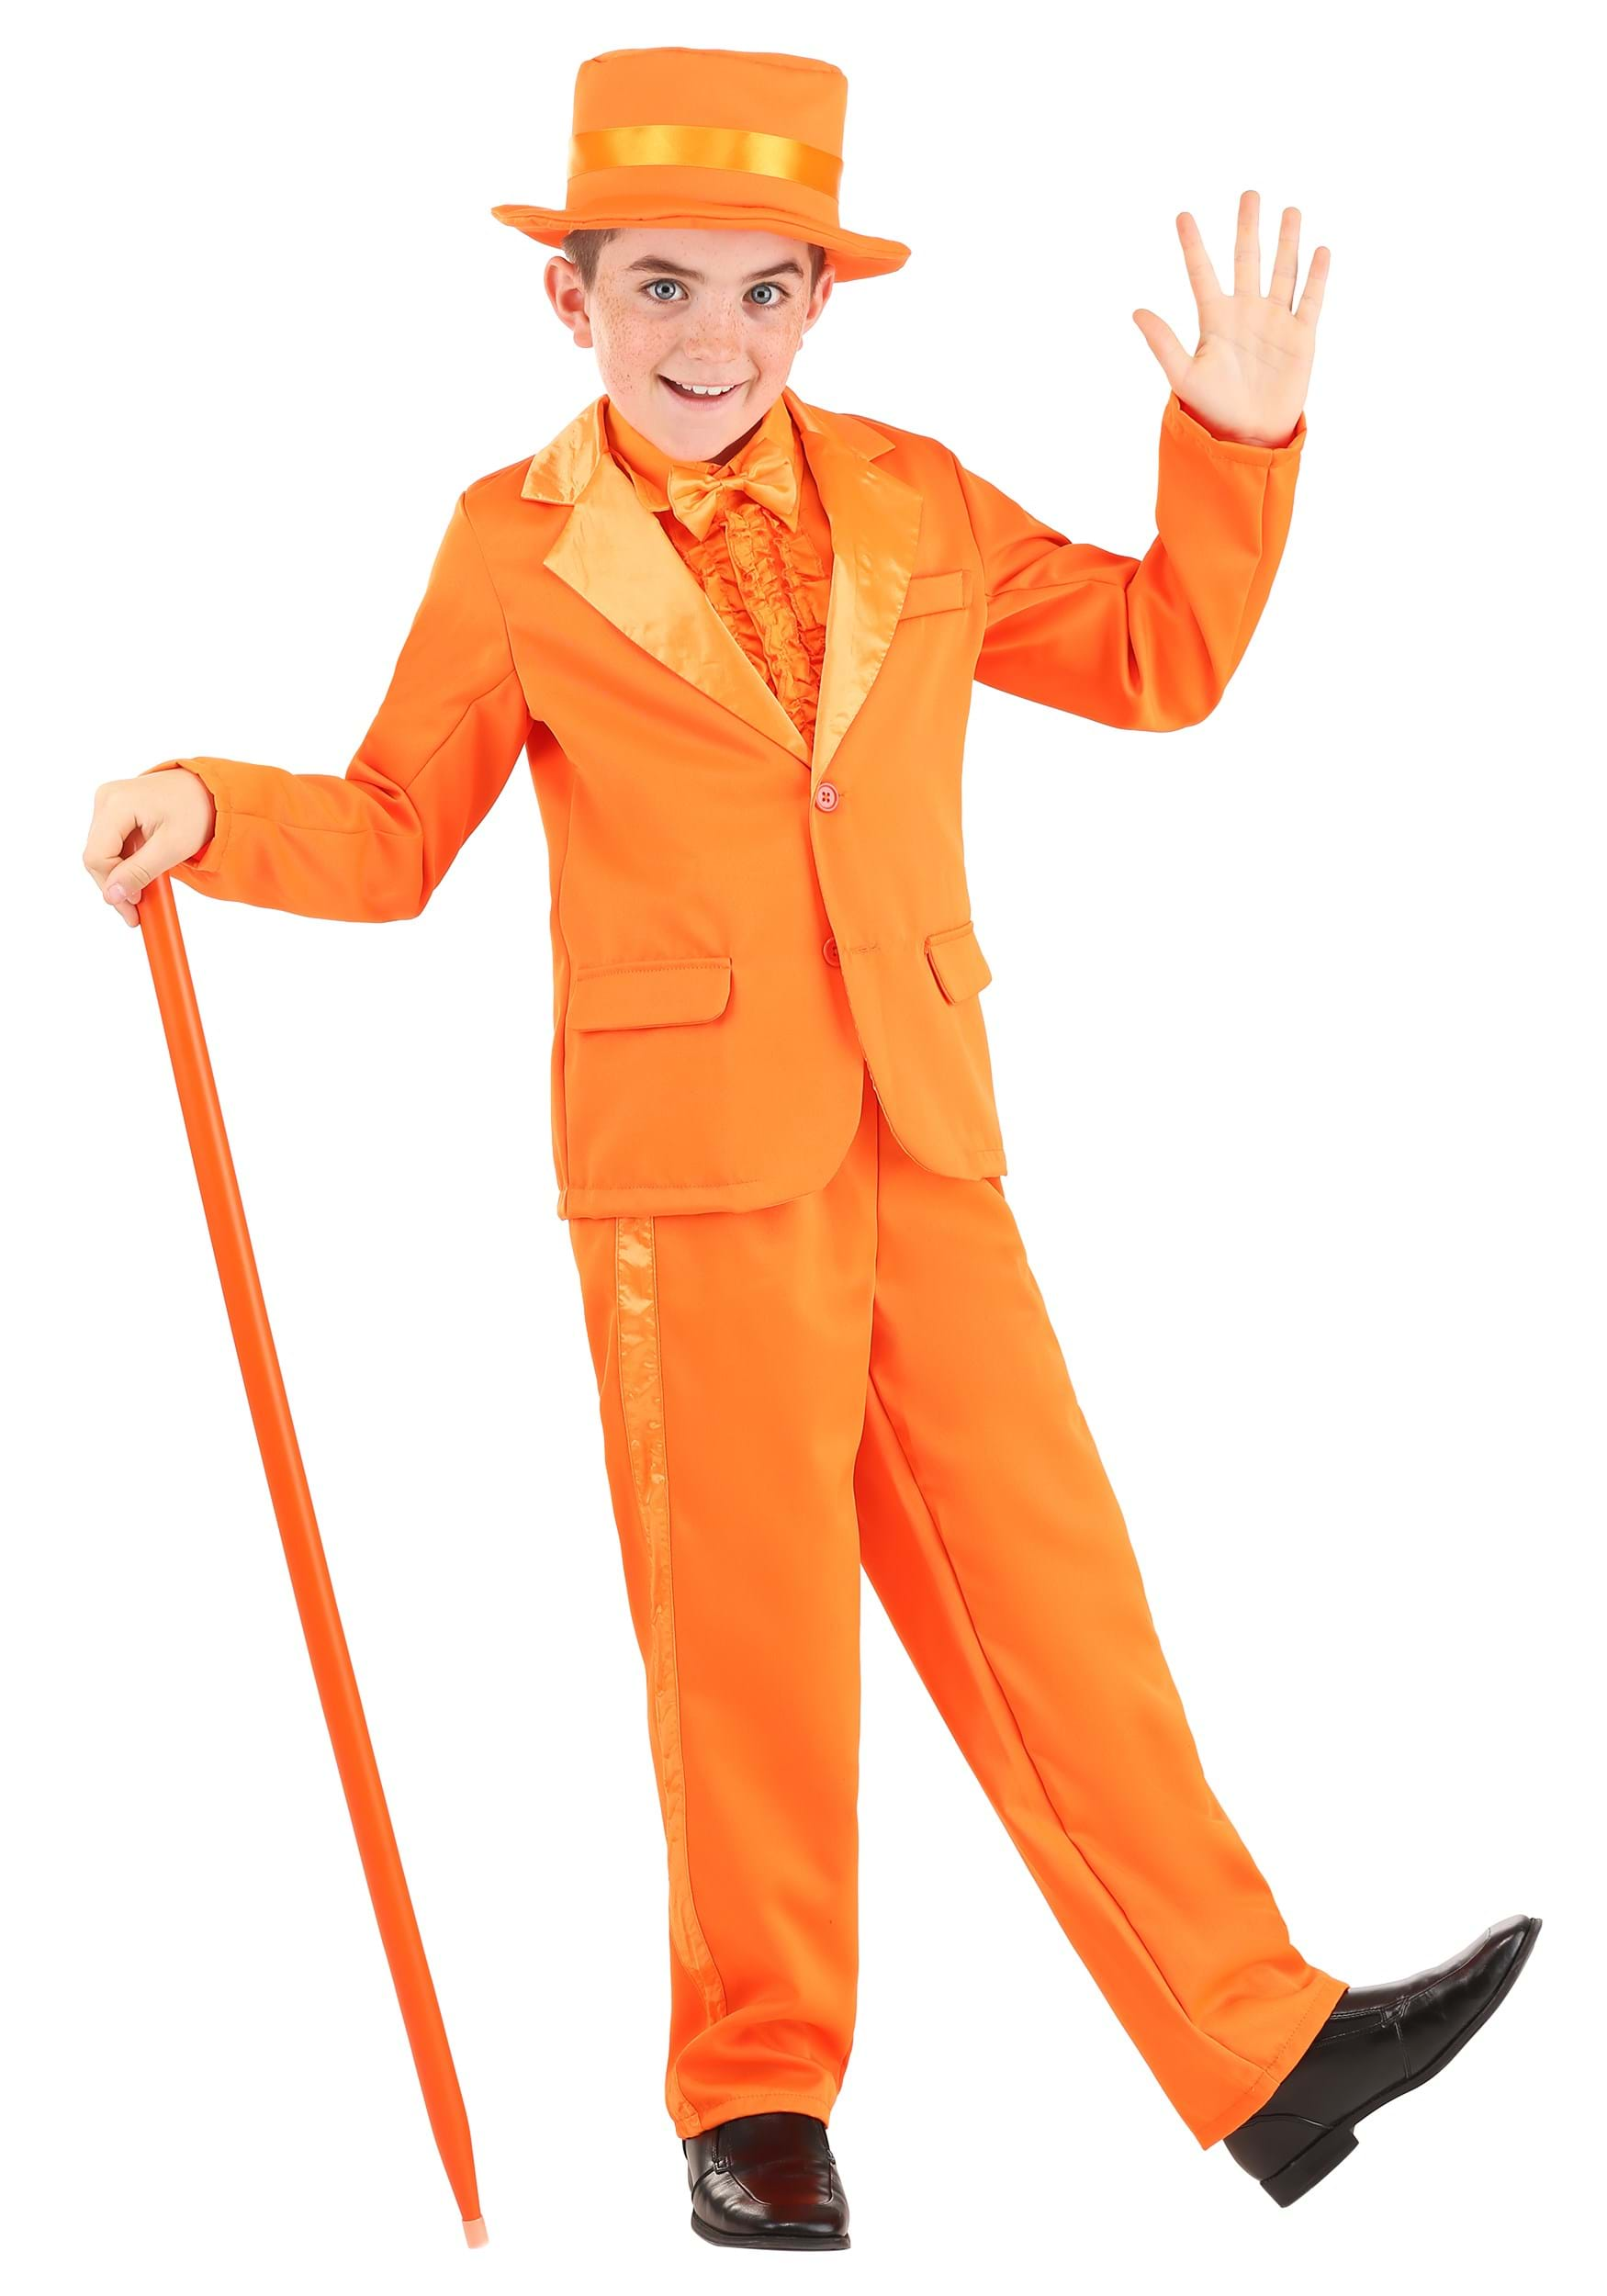 Get one of our Dumb and Dumber costumes and look handsome for your next special event. We carry several styles of blue and orange tuxedos for adults and kids as well as many coordinating accessories.